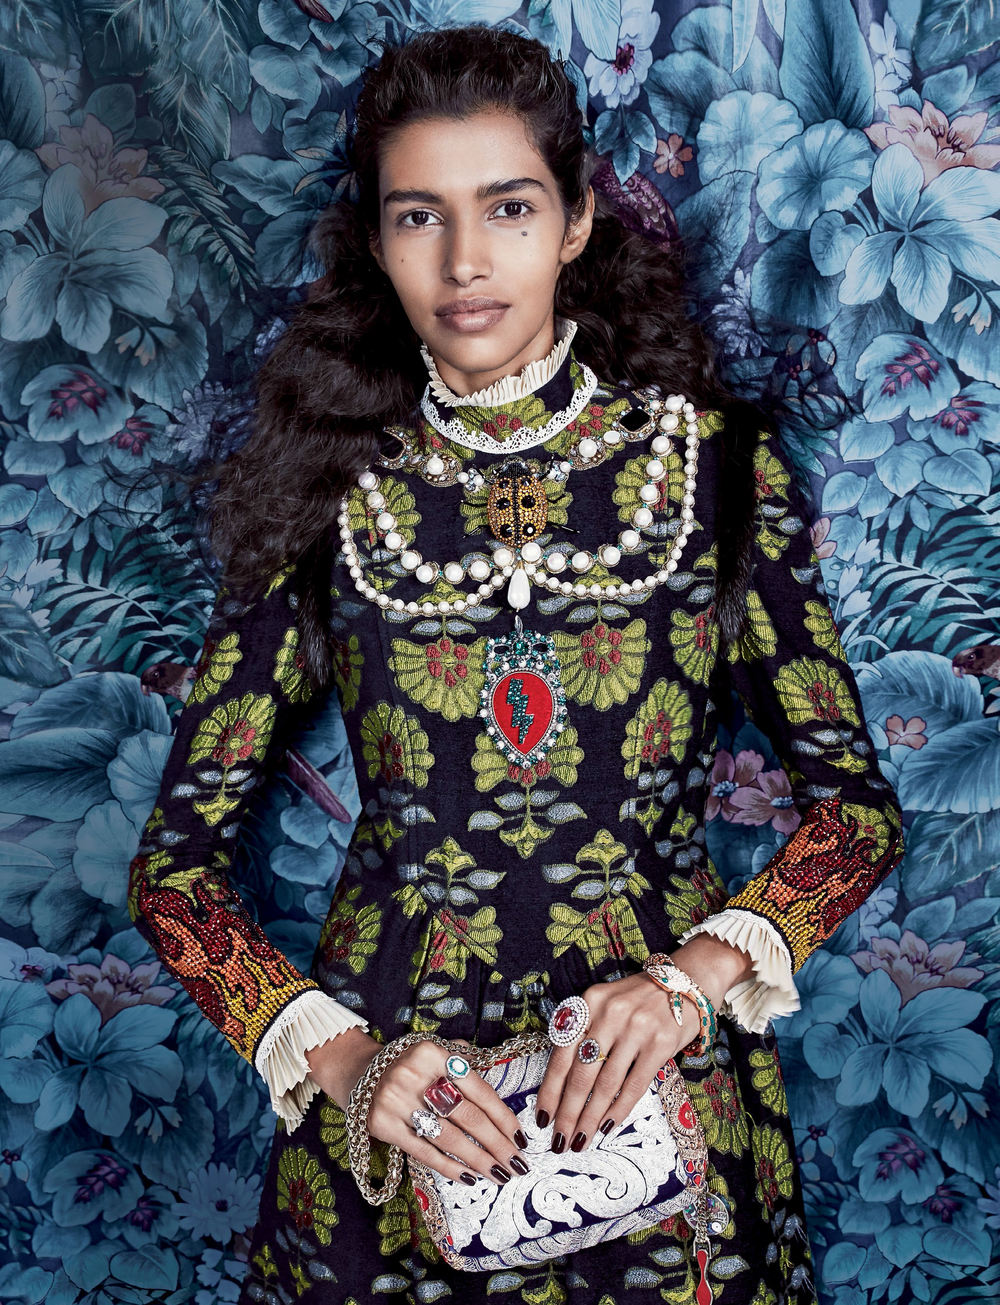 03-Vogue-US-August-2016-Pooja-Mor-by-Patrick-Demarchelier.jpg